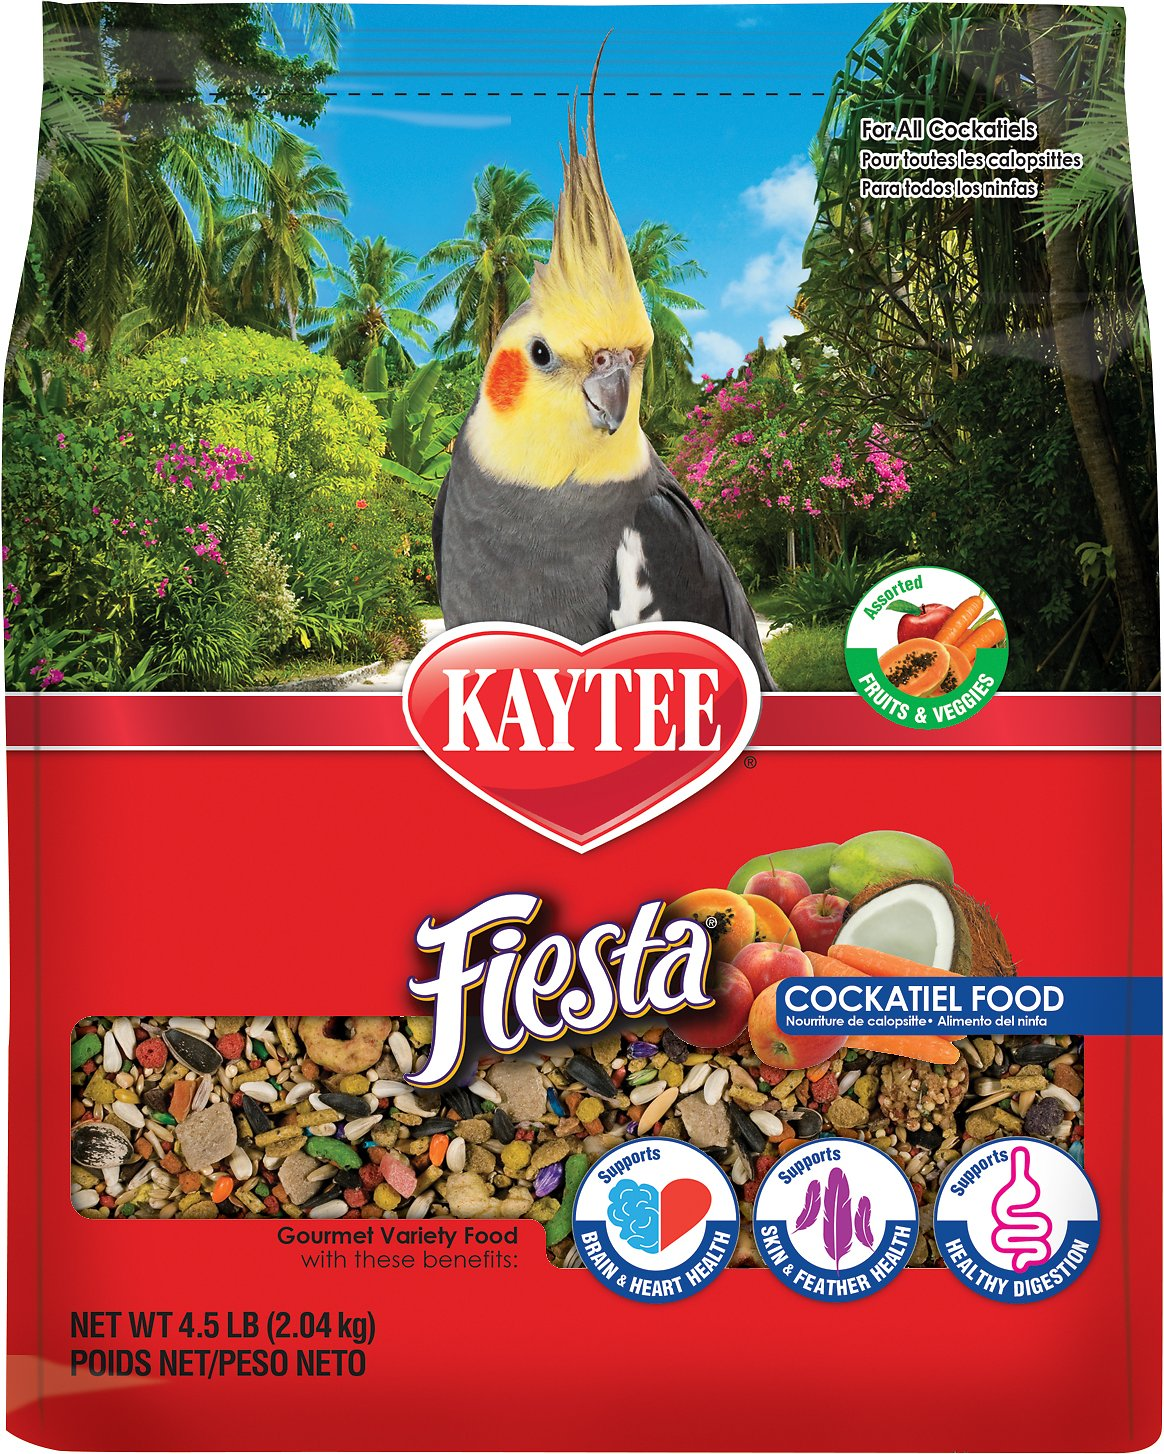 Kaytee Fiesta Variety Mix Cockatiel Bird Food Image